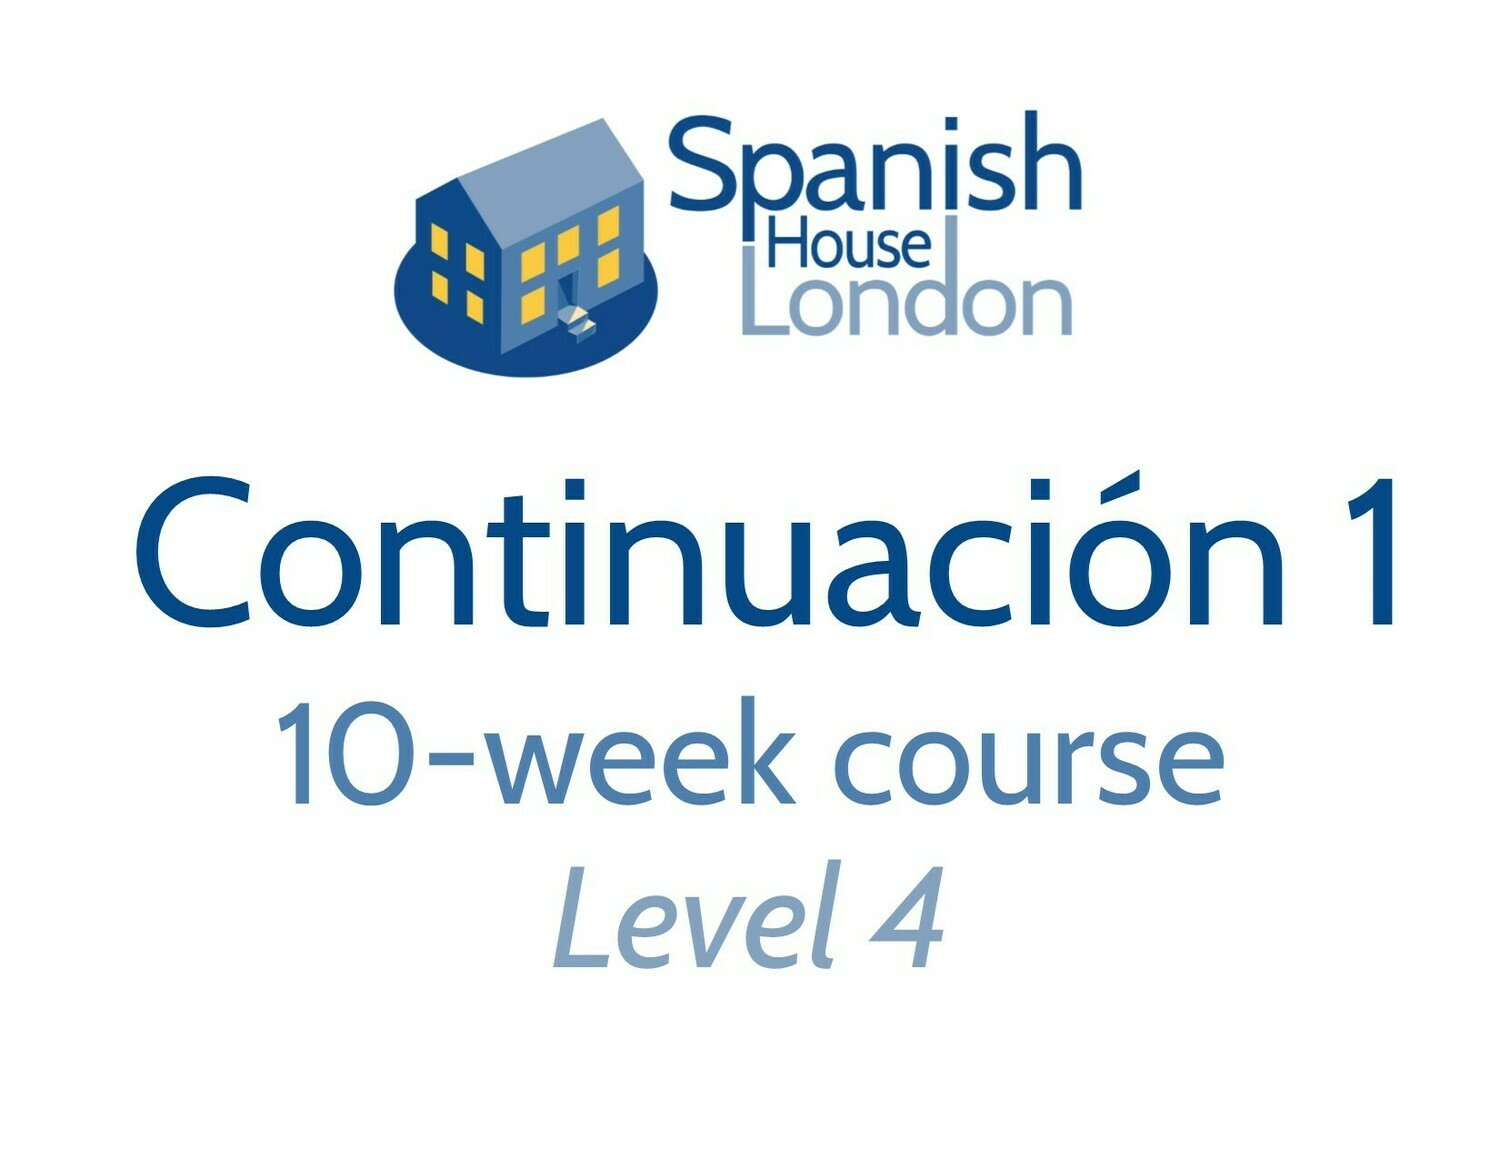 Continuacion 1 Course starting on 5th May at 7.30pm in Canary Wharf